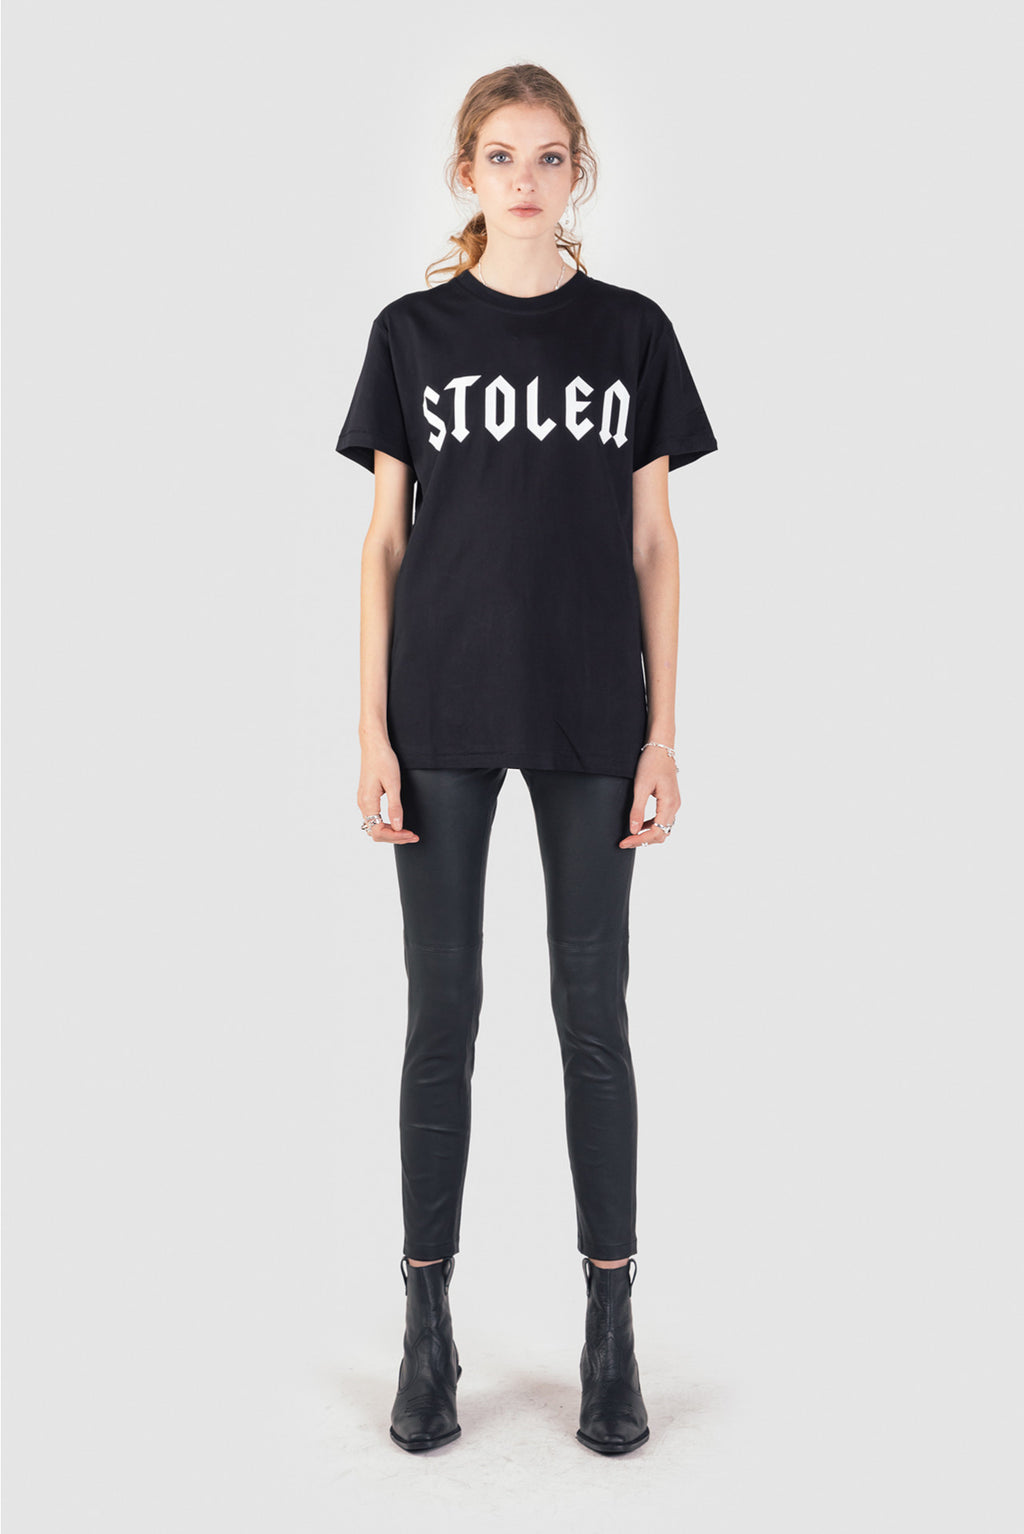 Stolen Girlfriends Club Metal Classic Tee Black